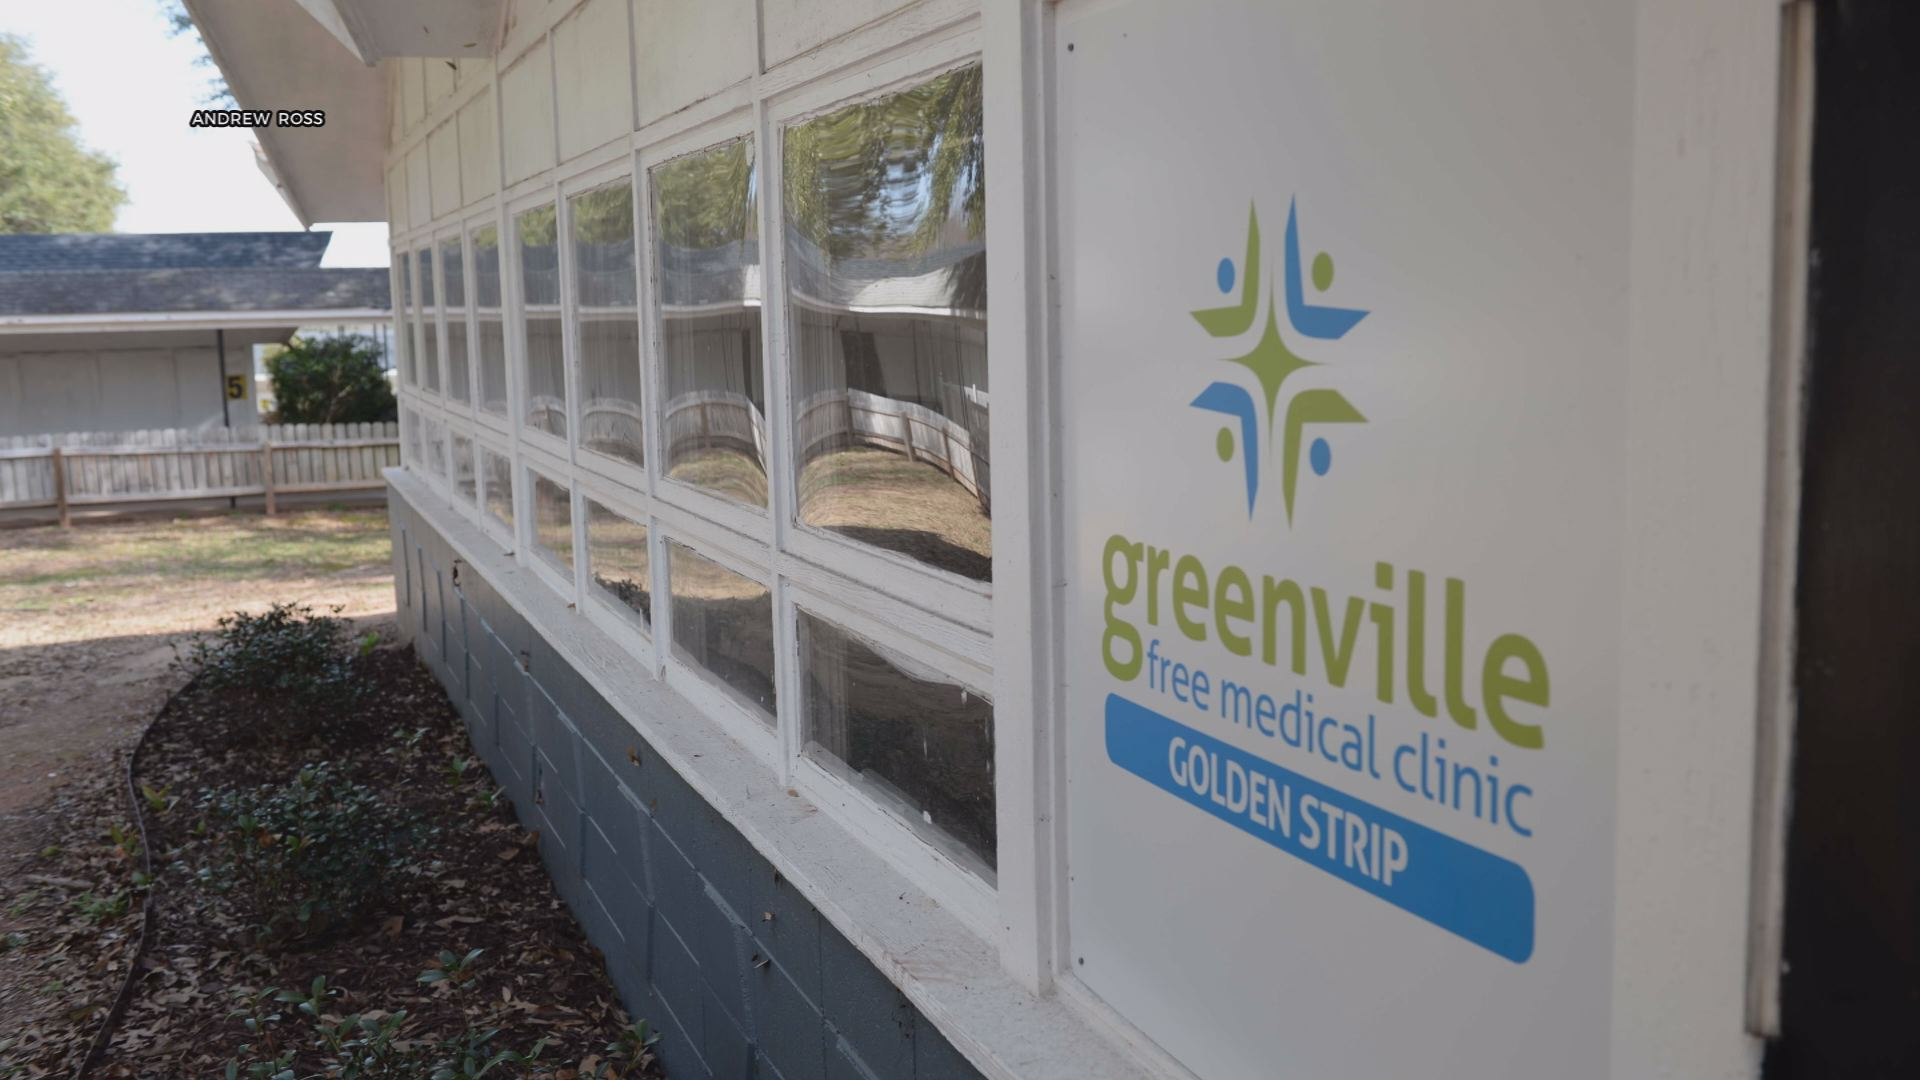 GREENVILLE MEDICAL CLINIC_551332